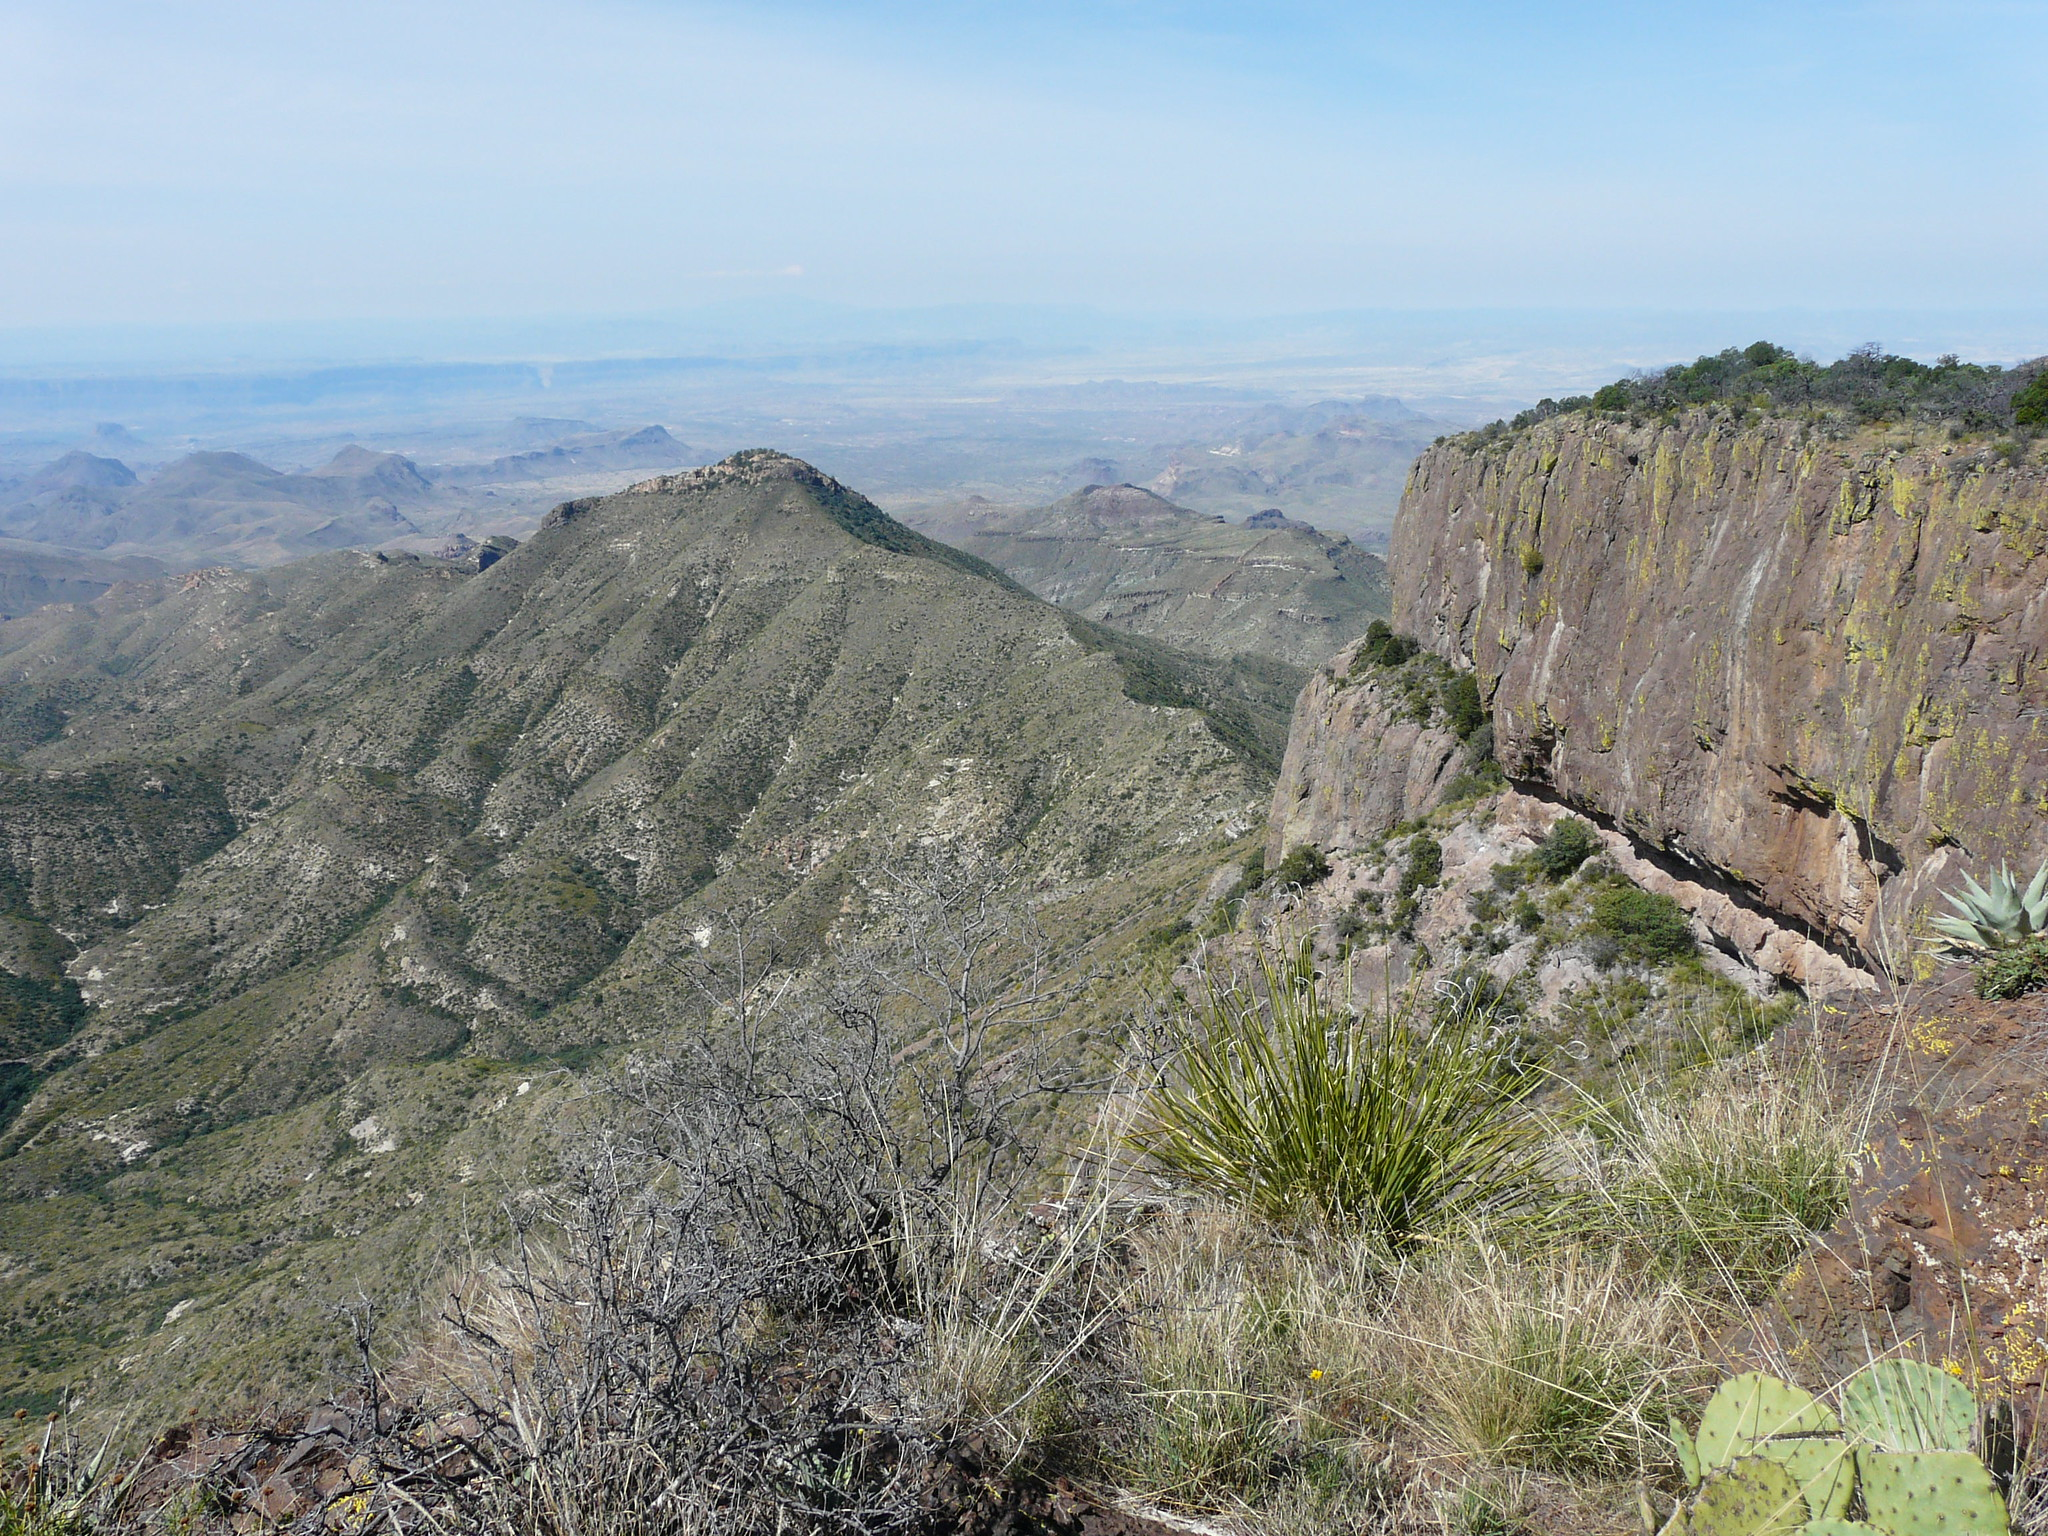 Scenic Hiking Locations In Texas For Outdoor Activity-South Rim at Big Bend National Park